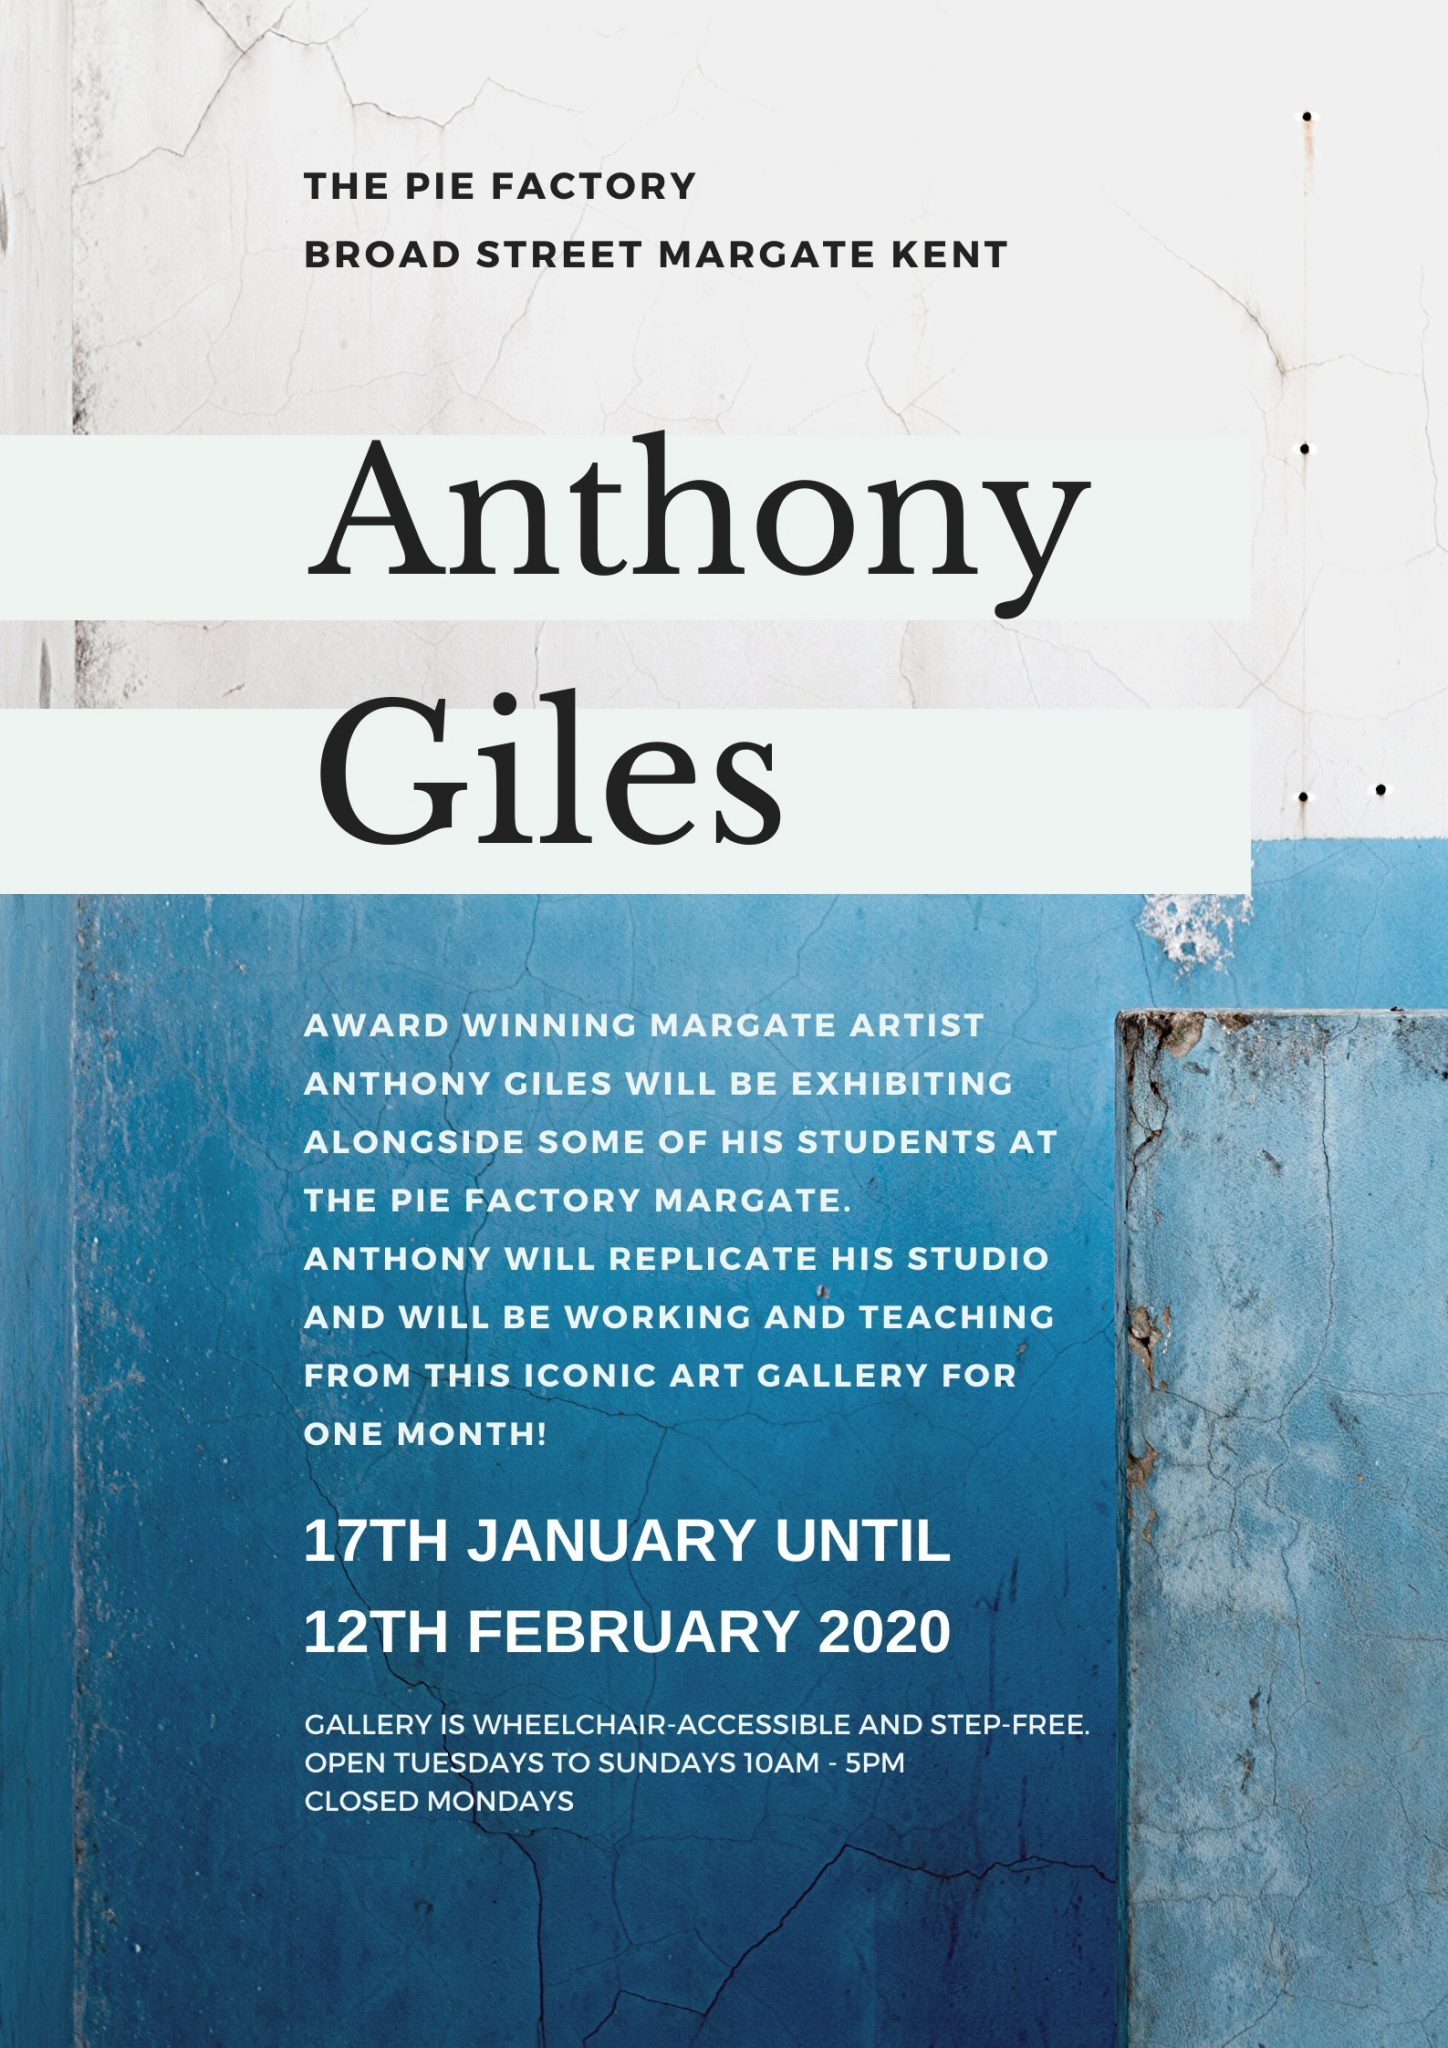 Anthony Giles exhibition at Pie Factory Margate